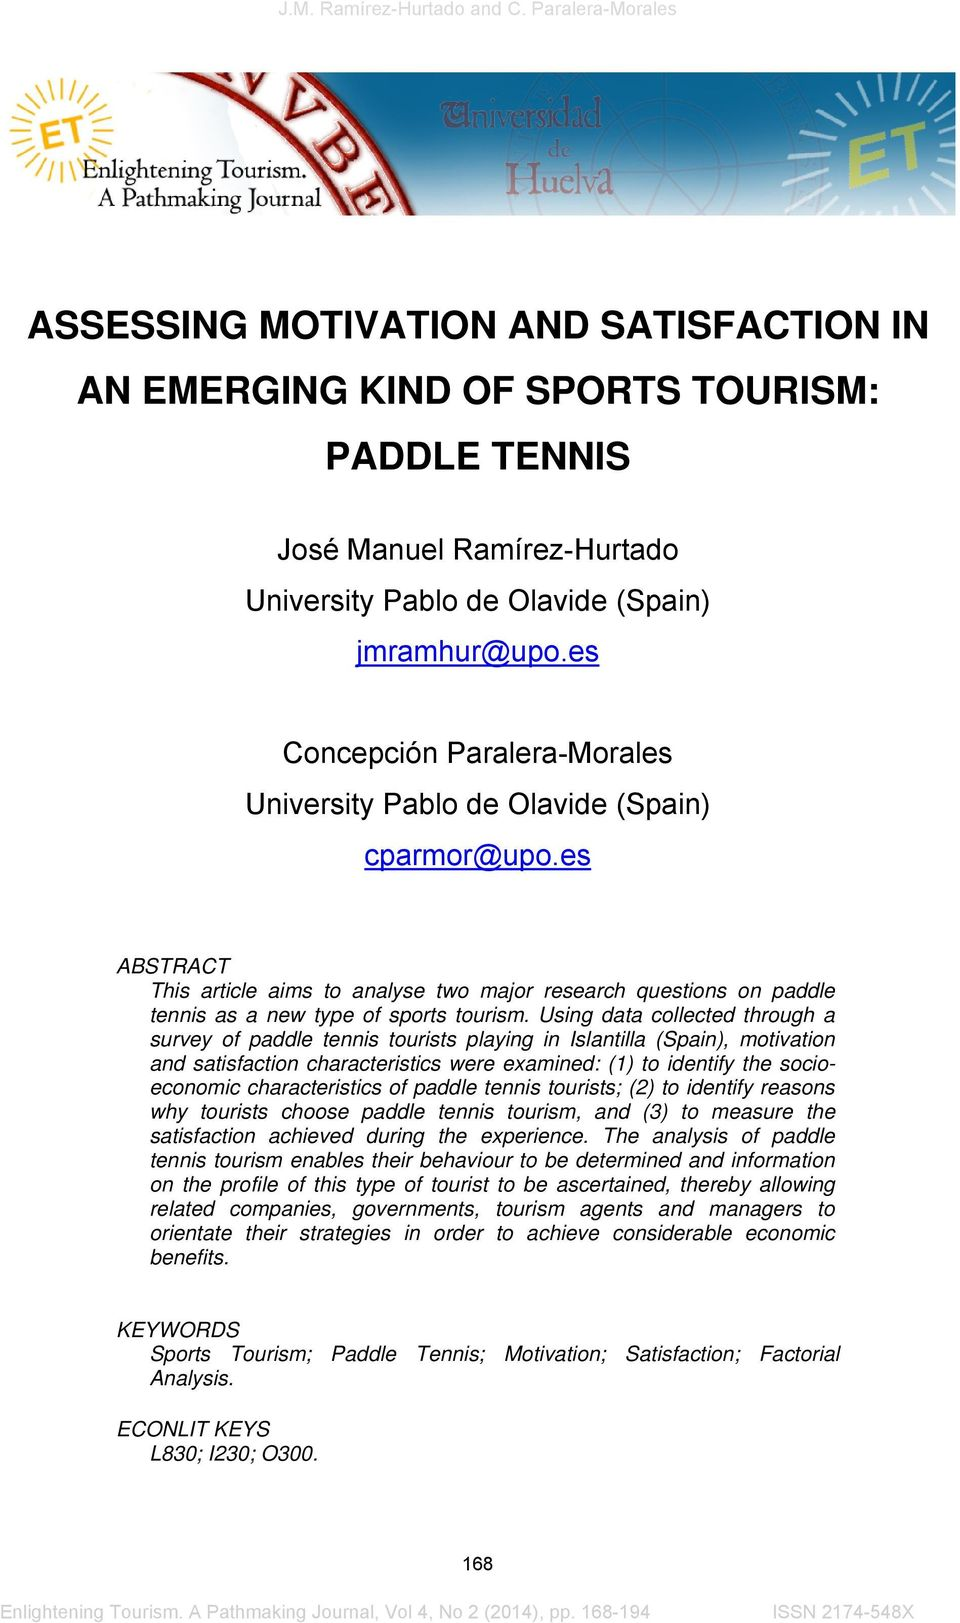 Using data collected through a survey of paddle tennis tourists playing in Islantilla (Spain), motivation and satisfaction characteristics were examined: (1) to identify the socioeconomic